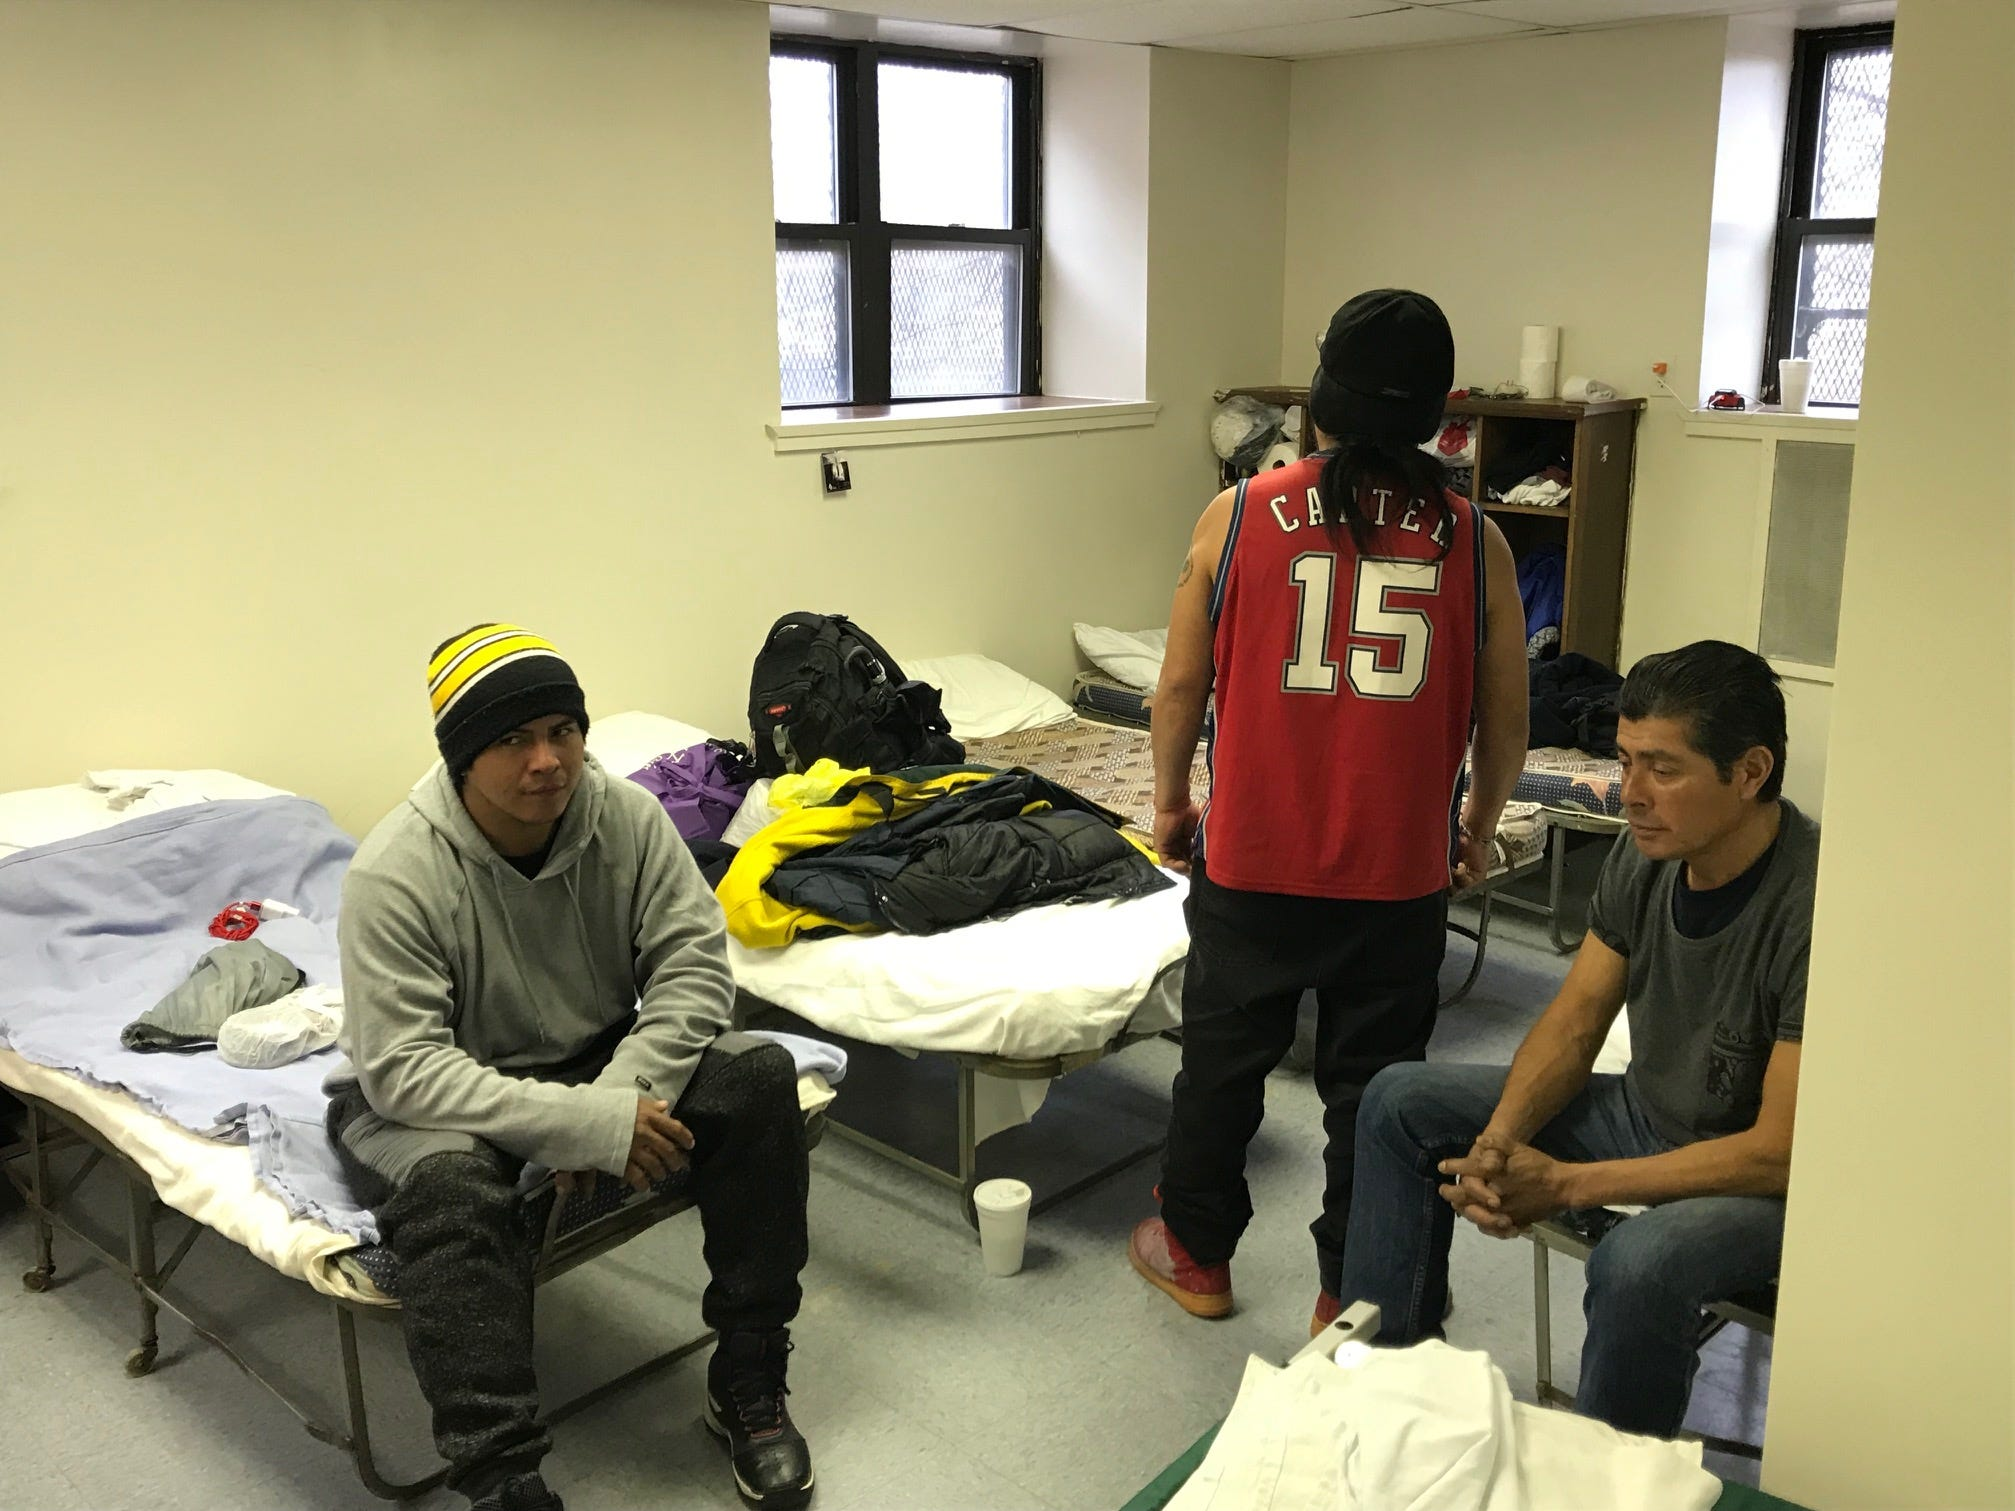 For some homelessness is a seasonal problem. In summer these men say there's ample work and they can afford to rent a room and get off the street. Time's are leaner in the winter.  Depending on weather and their networks, they may live underneath the Route 21 overpass, or a firend's couch or when weather turns frightful like it did on Sunday and Monday, they may check into the City of Passaic's shelter on Aspen Place.